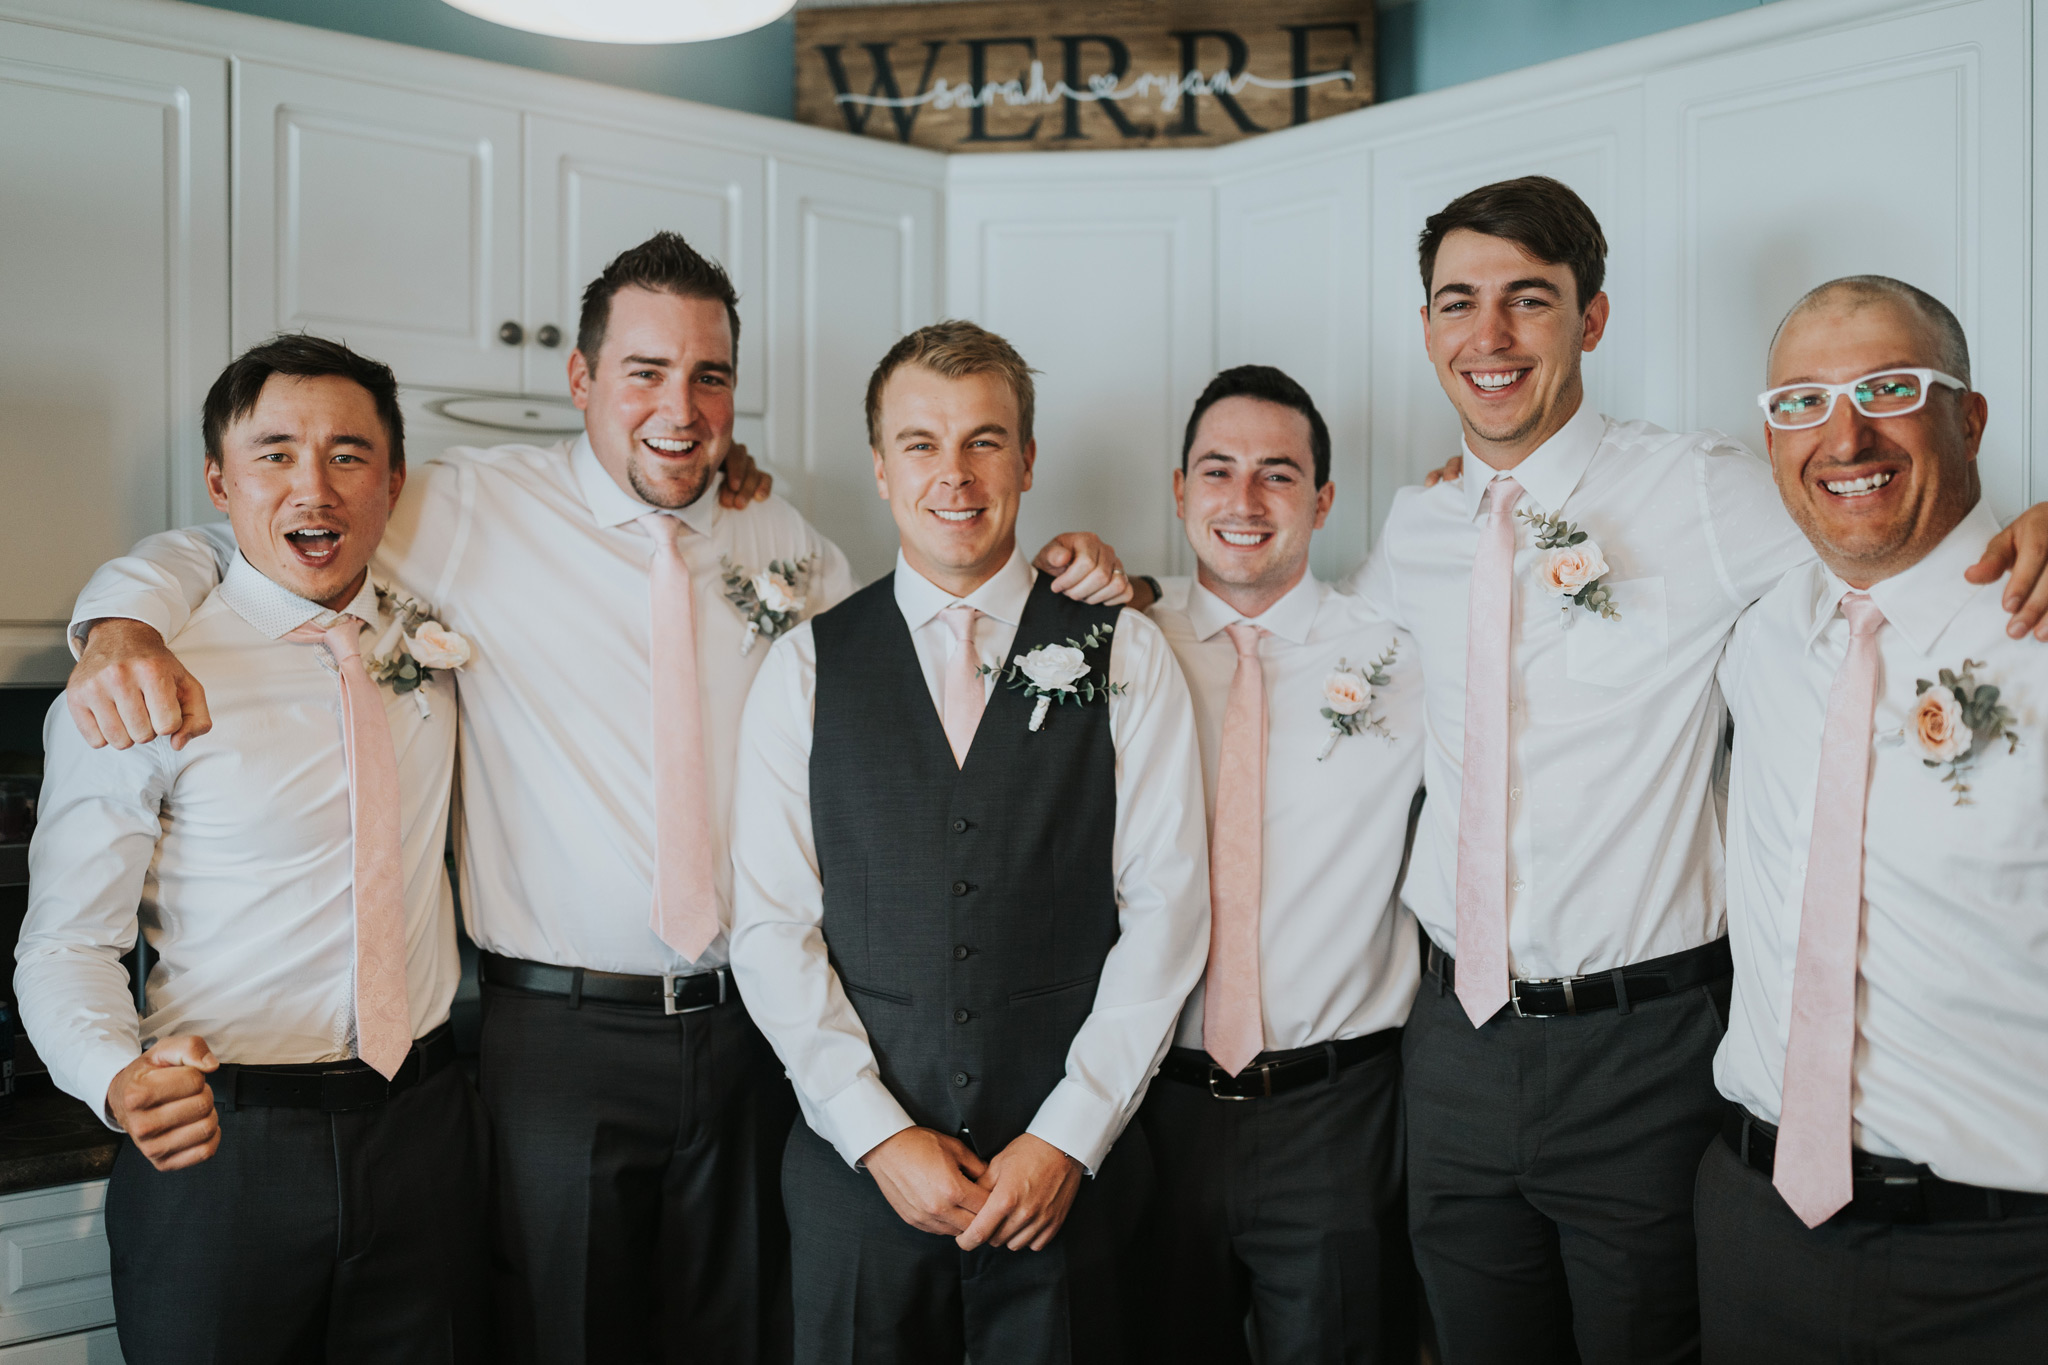 groom with groomsmen happy and excited